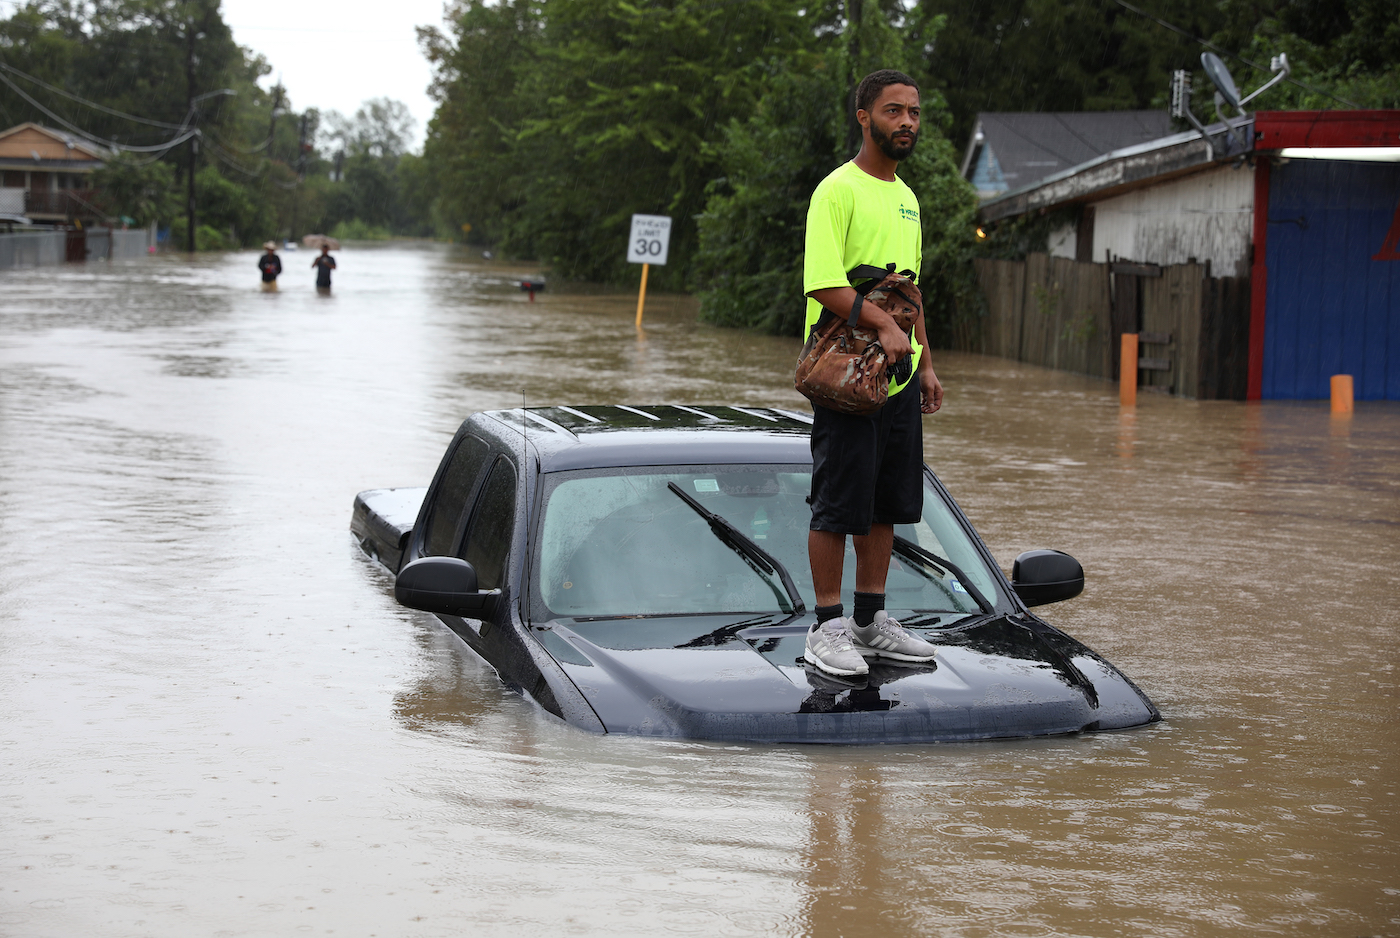 The Harris County Sheriff's Office rescue people from floodwaters in Aldine, TX during Tropical Storm Imelda on September 19, 2019. Aldine experienced 12.53 inches of rain during the storm. Photo by Sharon Steinmann/Harris County Sheriff's Office